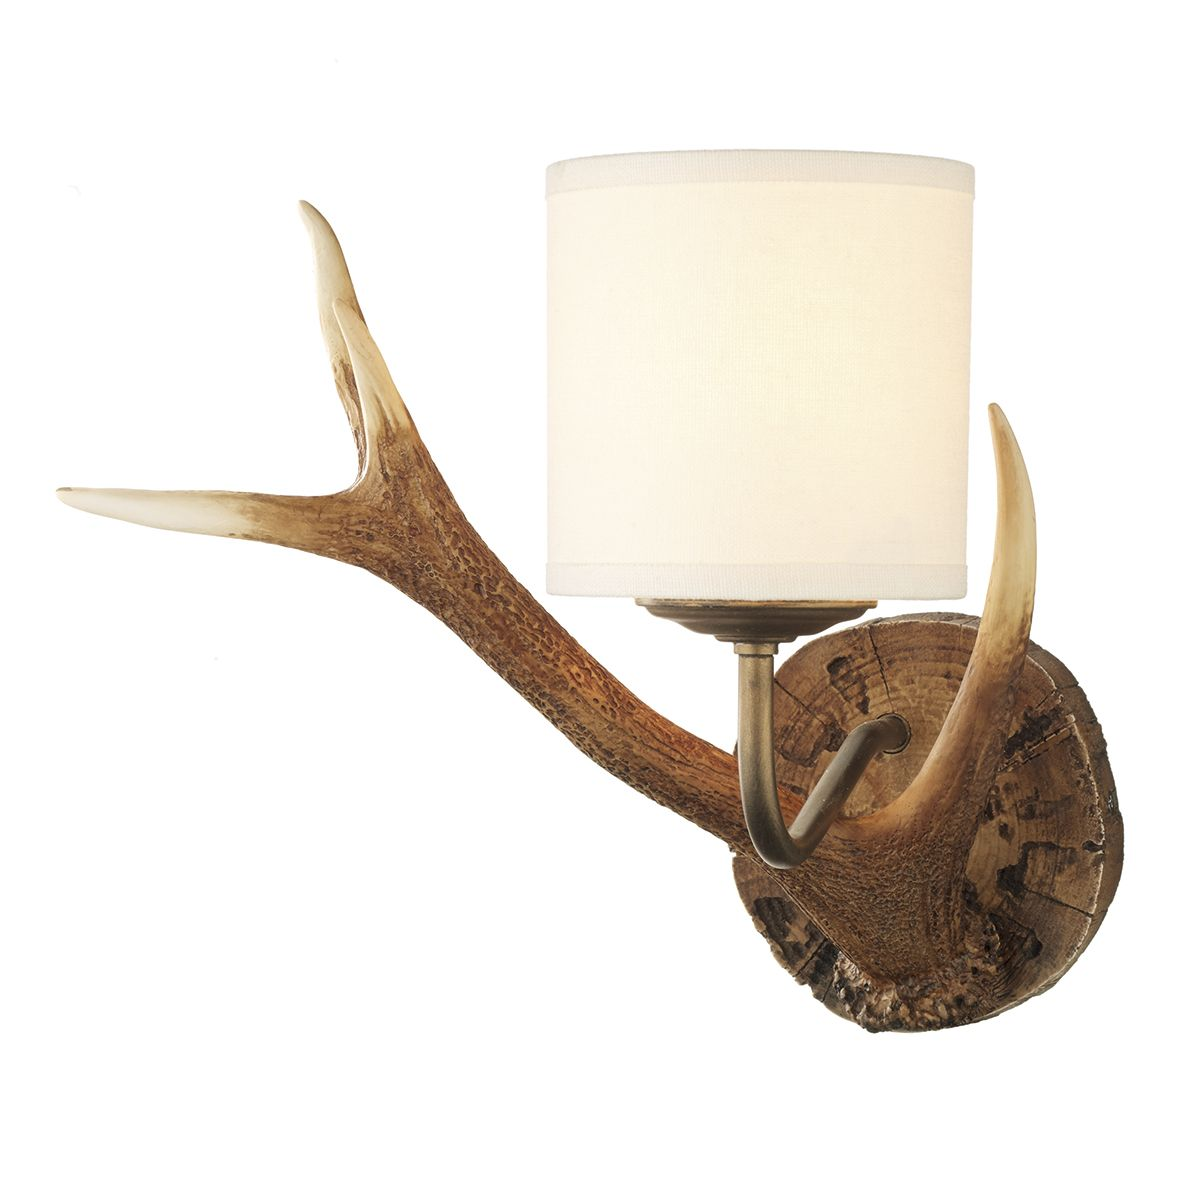 ANT0729S- Antler Wall Light Small complete with Shade